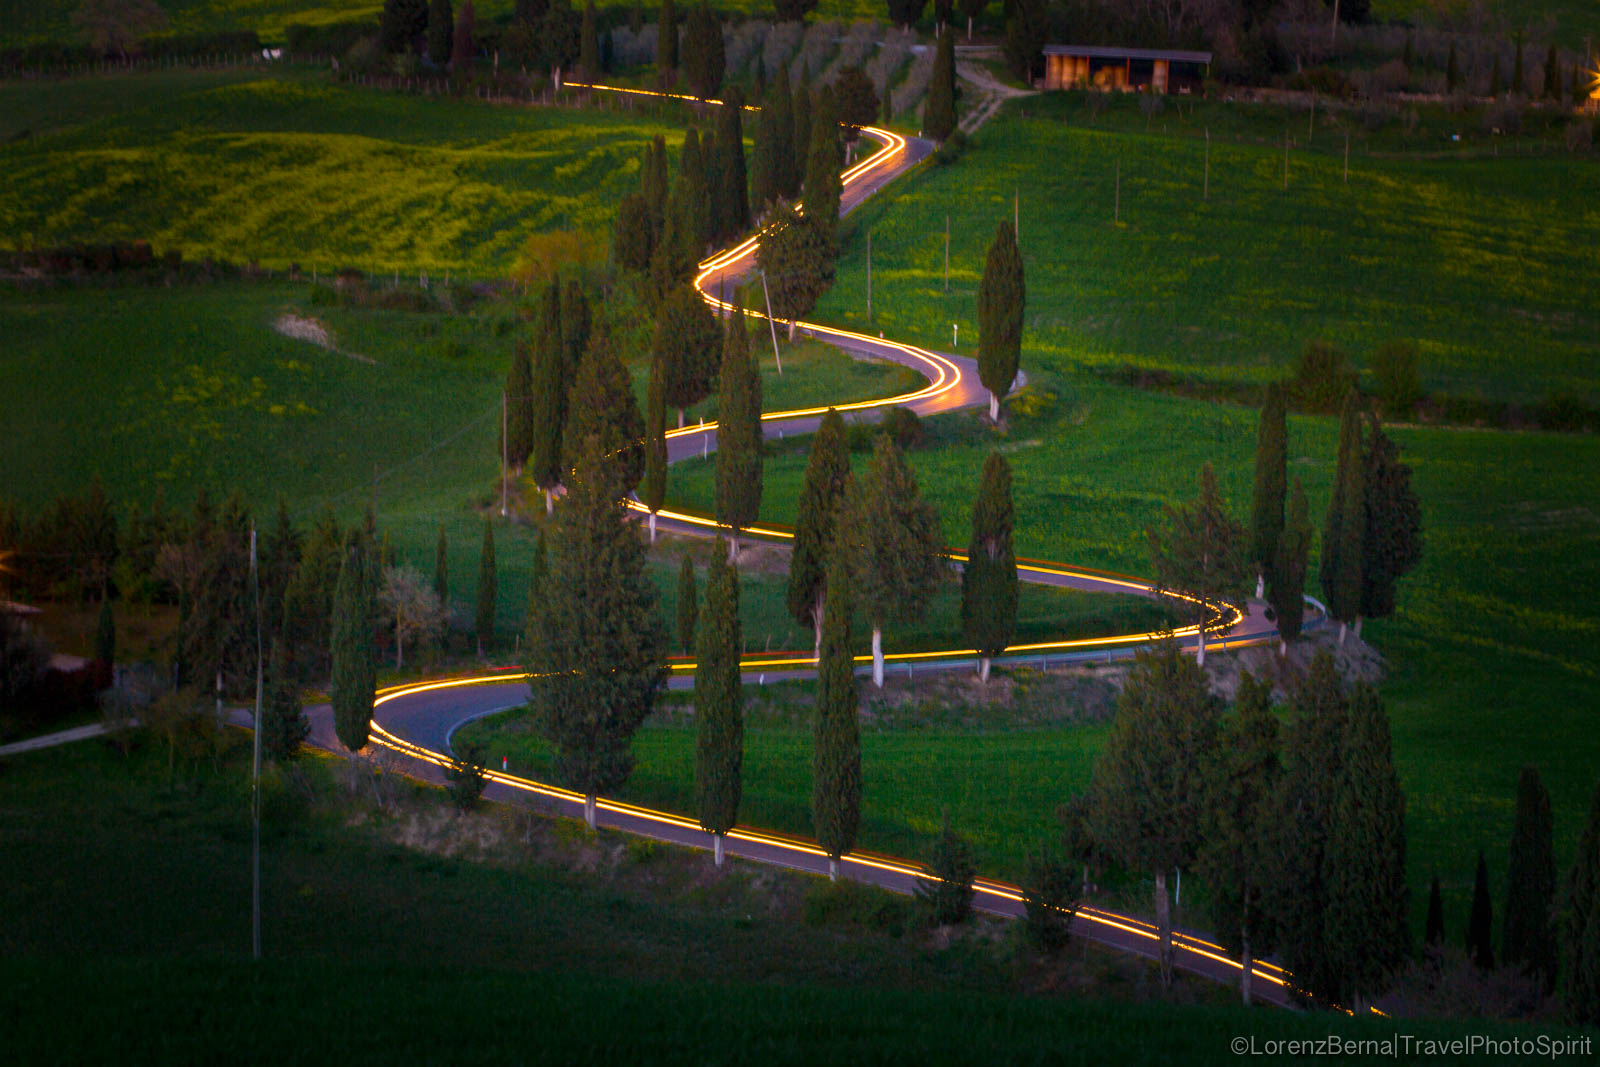 Night effects on the winding roads of Tuscany valleys - A Lorenz Berna Photography of Italy